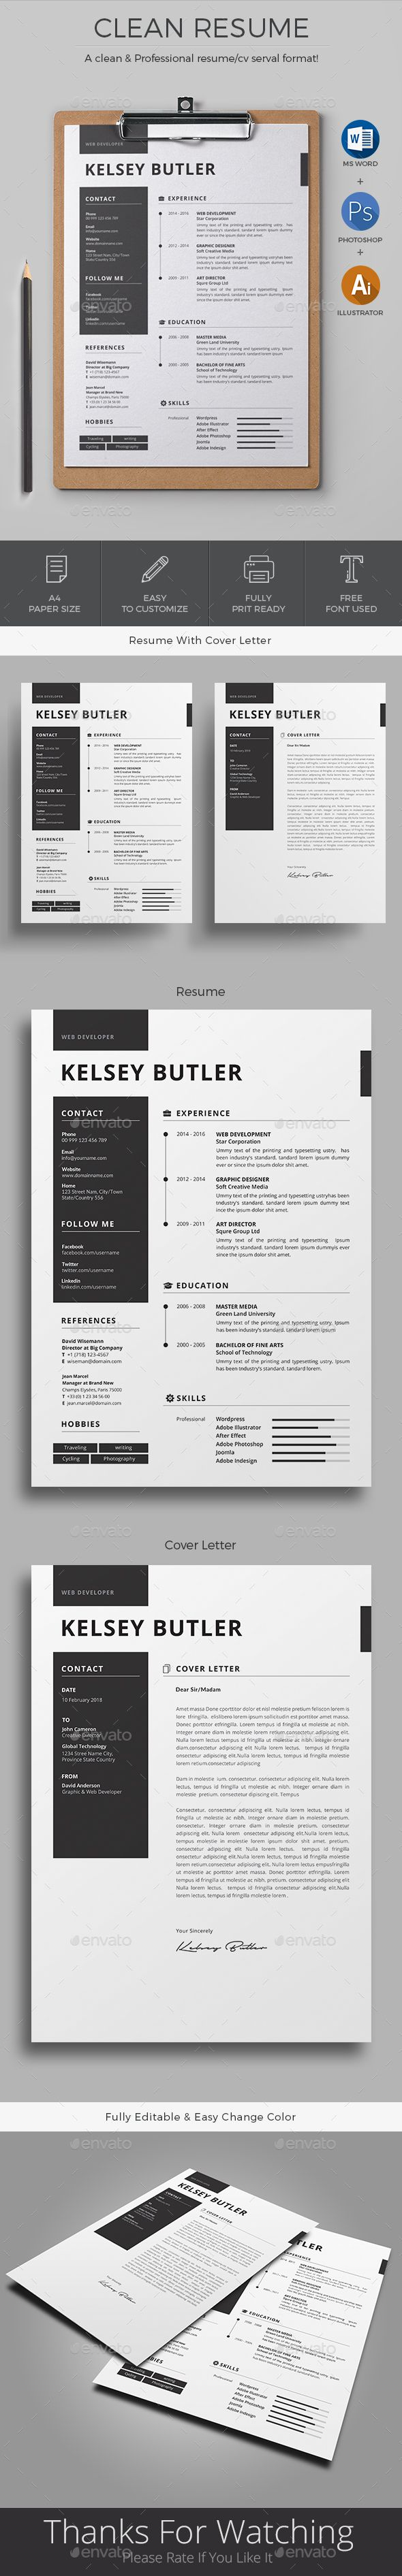 Resume - Resumes Stationery Download here: https://graphicriver.net/item/resume/19820623?ref=classicdesignp